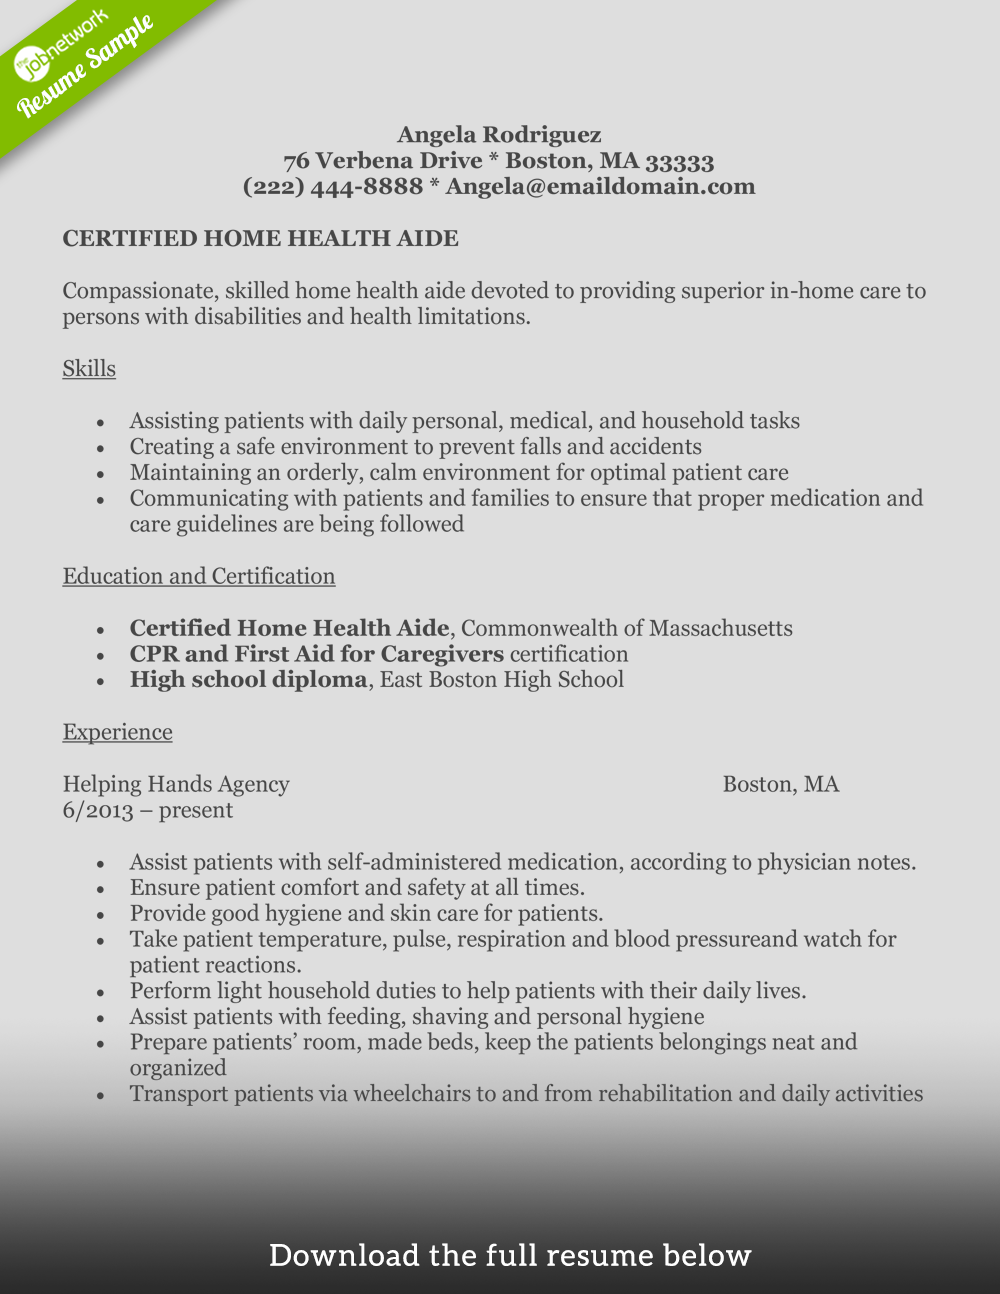 Home Health Aide Resume Certified  Resume Examples For Teachers